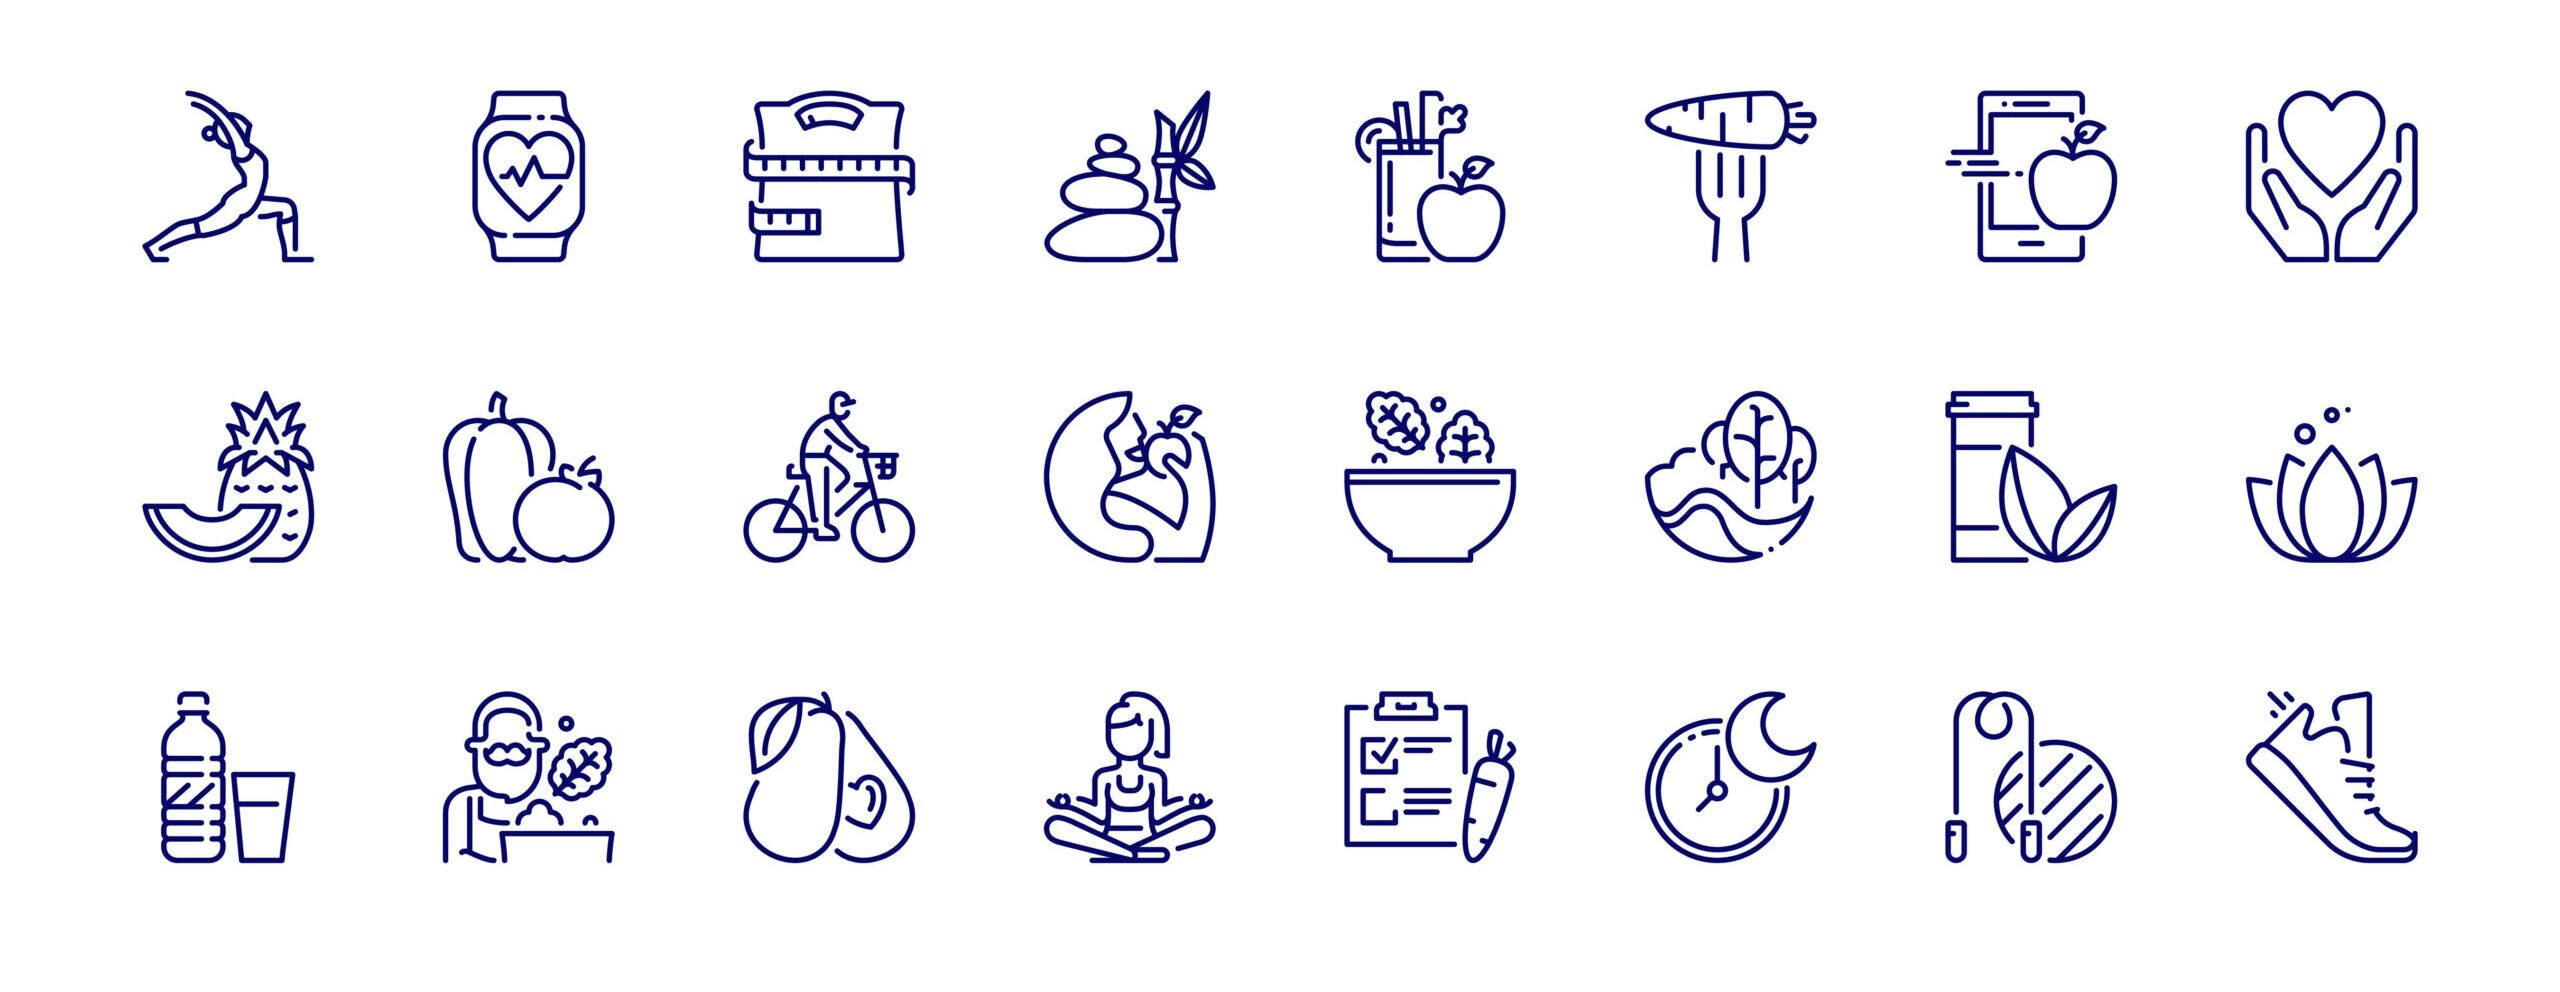 Simple set of outline icons about healthy lifestyle. Editable stroke. Vector - 256x256 pixel perfect.